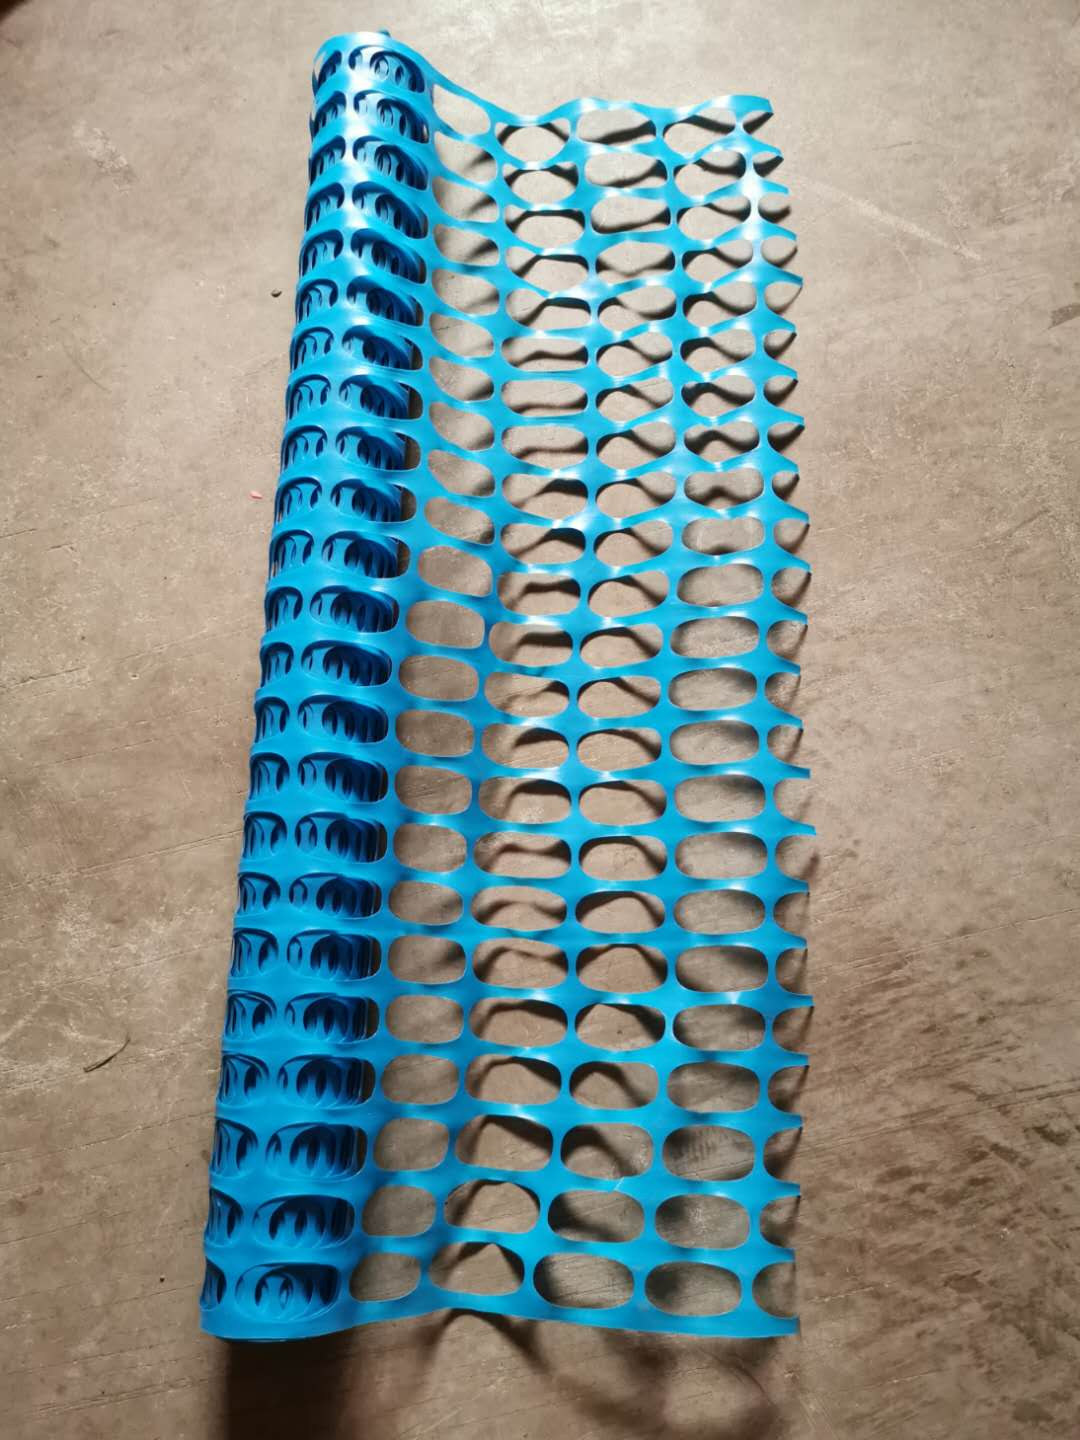 100% Virgin HDPE+UV Portable plastic orange construction safety mesh